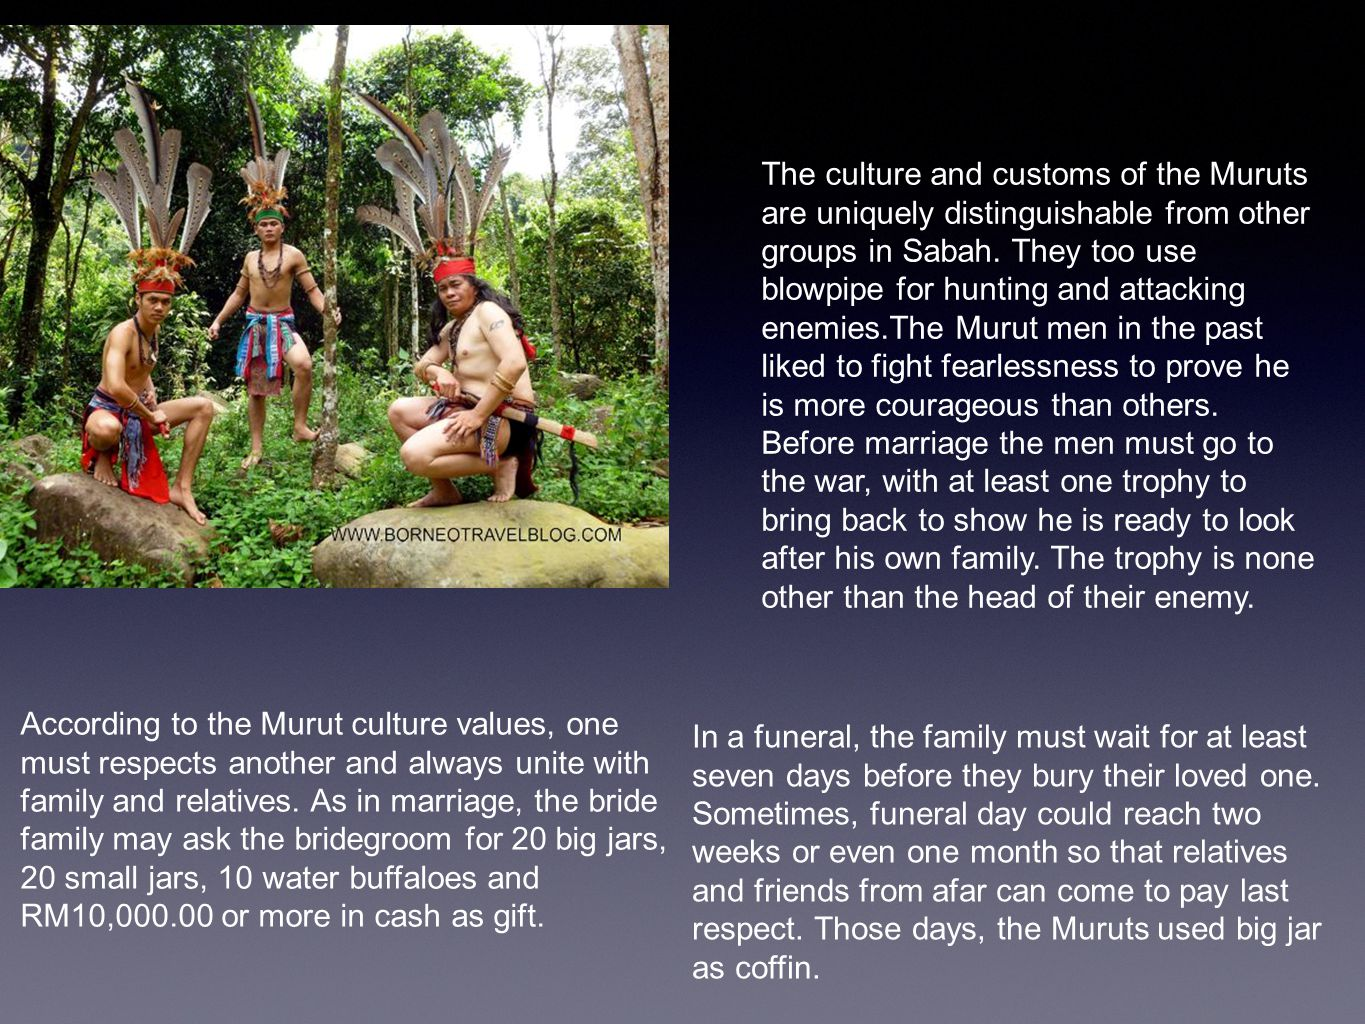 The culture and customs of the Muruts are uniquely distinguishable from other groups in Sabah.